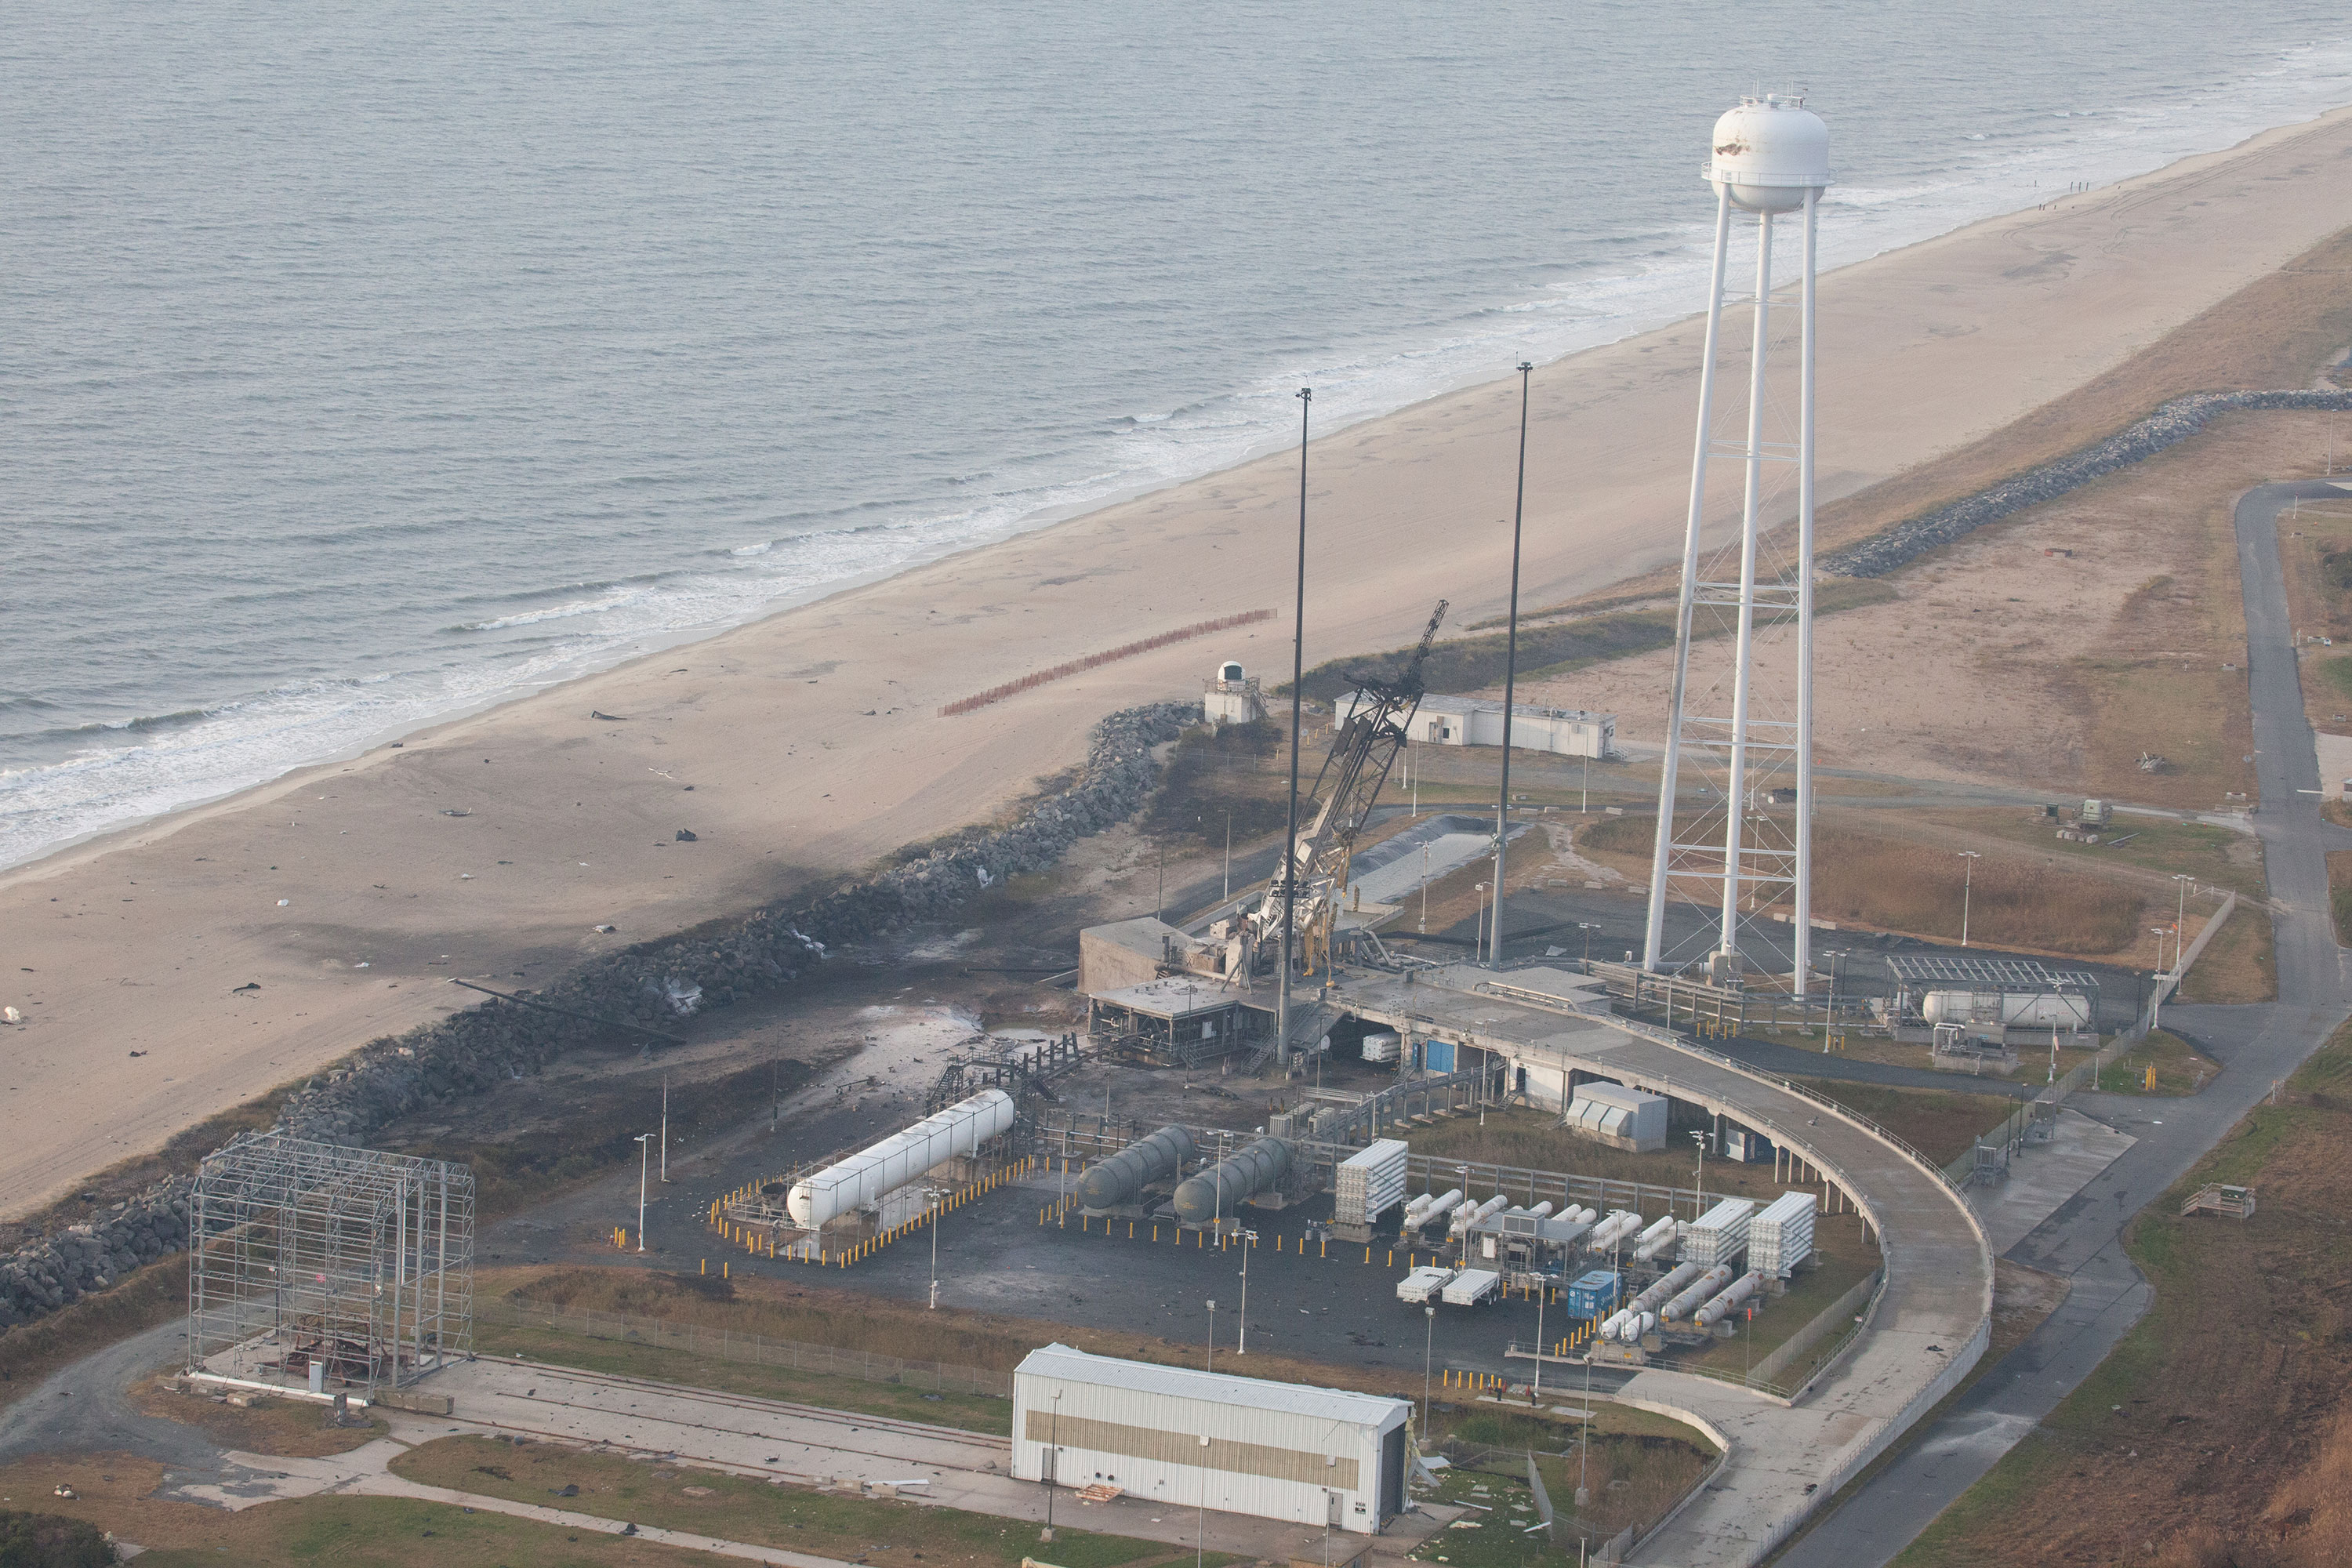 An aerial view of the Wallops Island